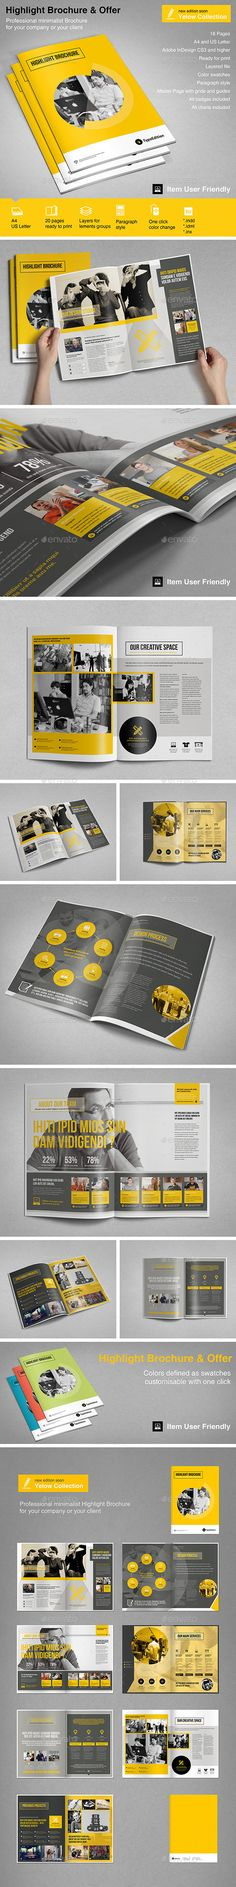 Highlight Brochure Vol. 2 - Informational Brochures